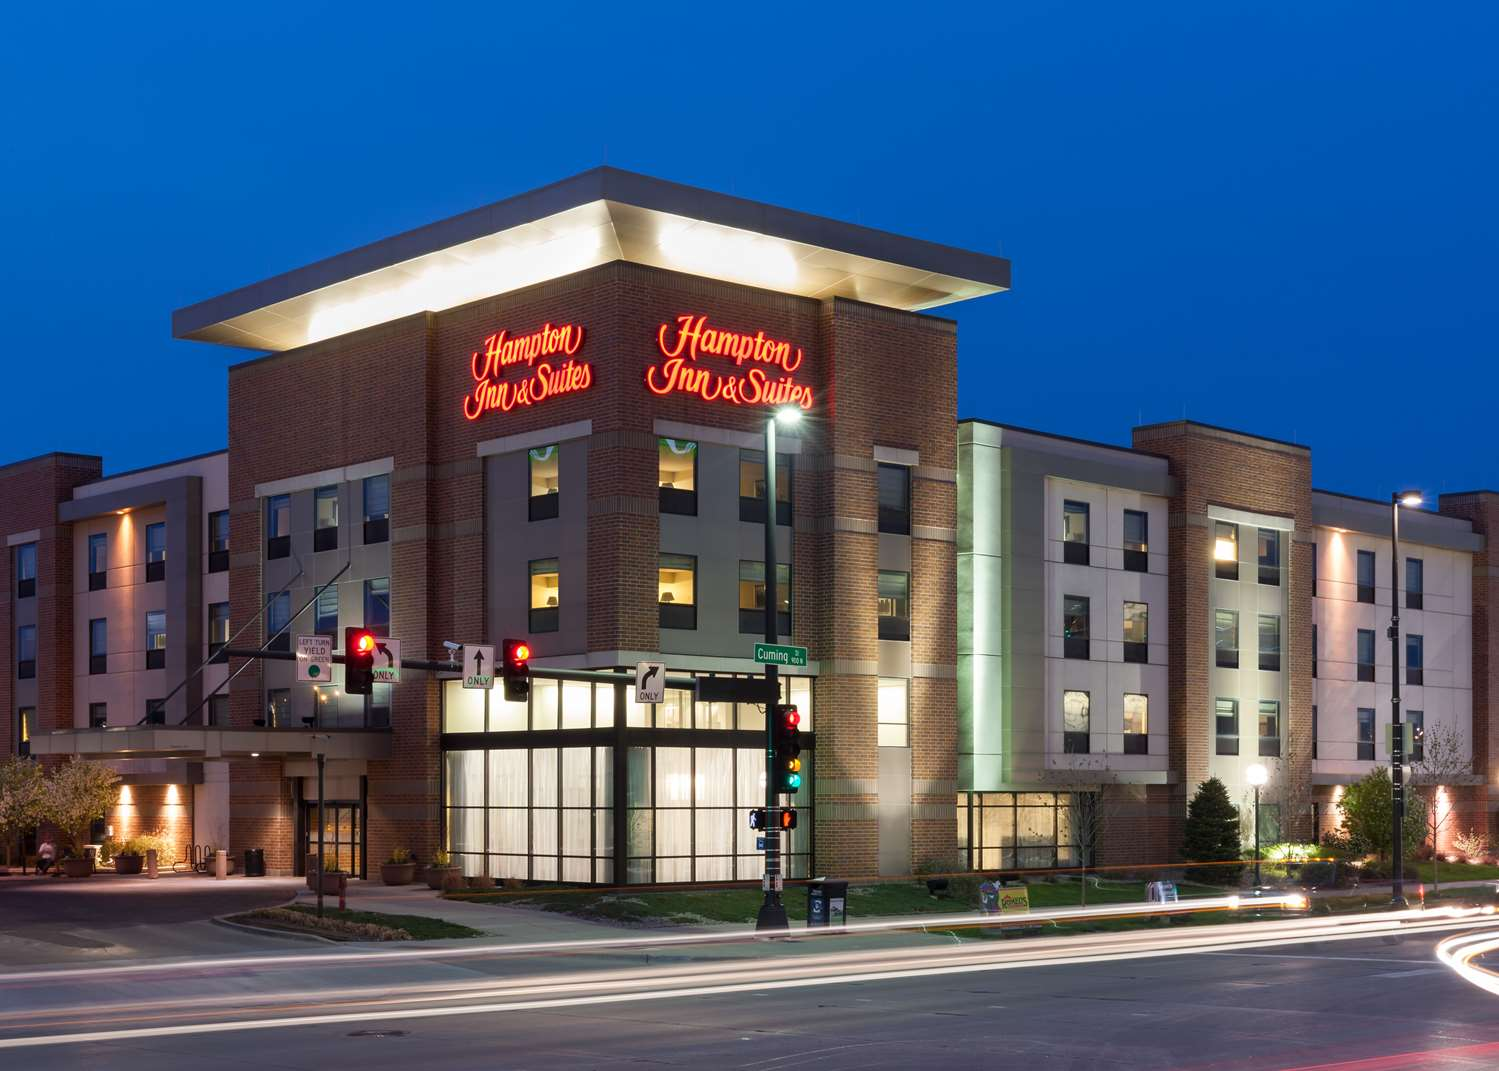 Hampton Inn & Suites Omaha